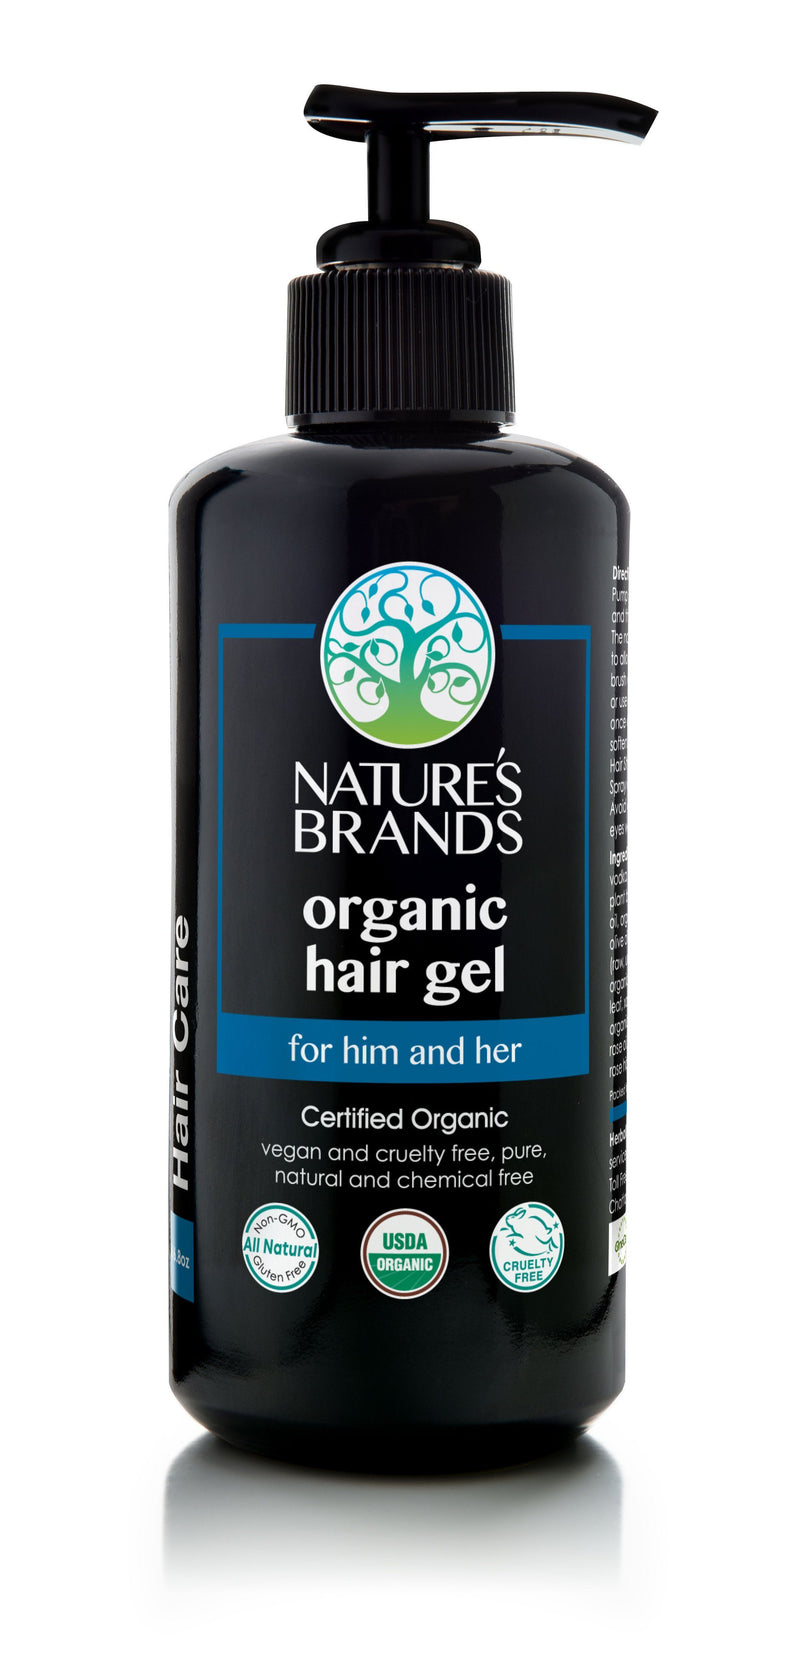 Herbal Choice Mari Organic Hair Gel - Herbal Choice Mari Organic Hair Gel - 6.8floz